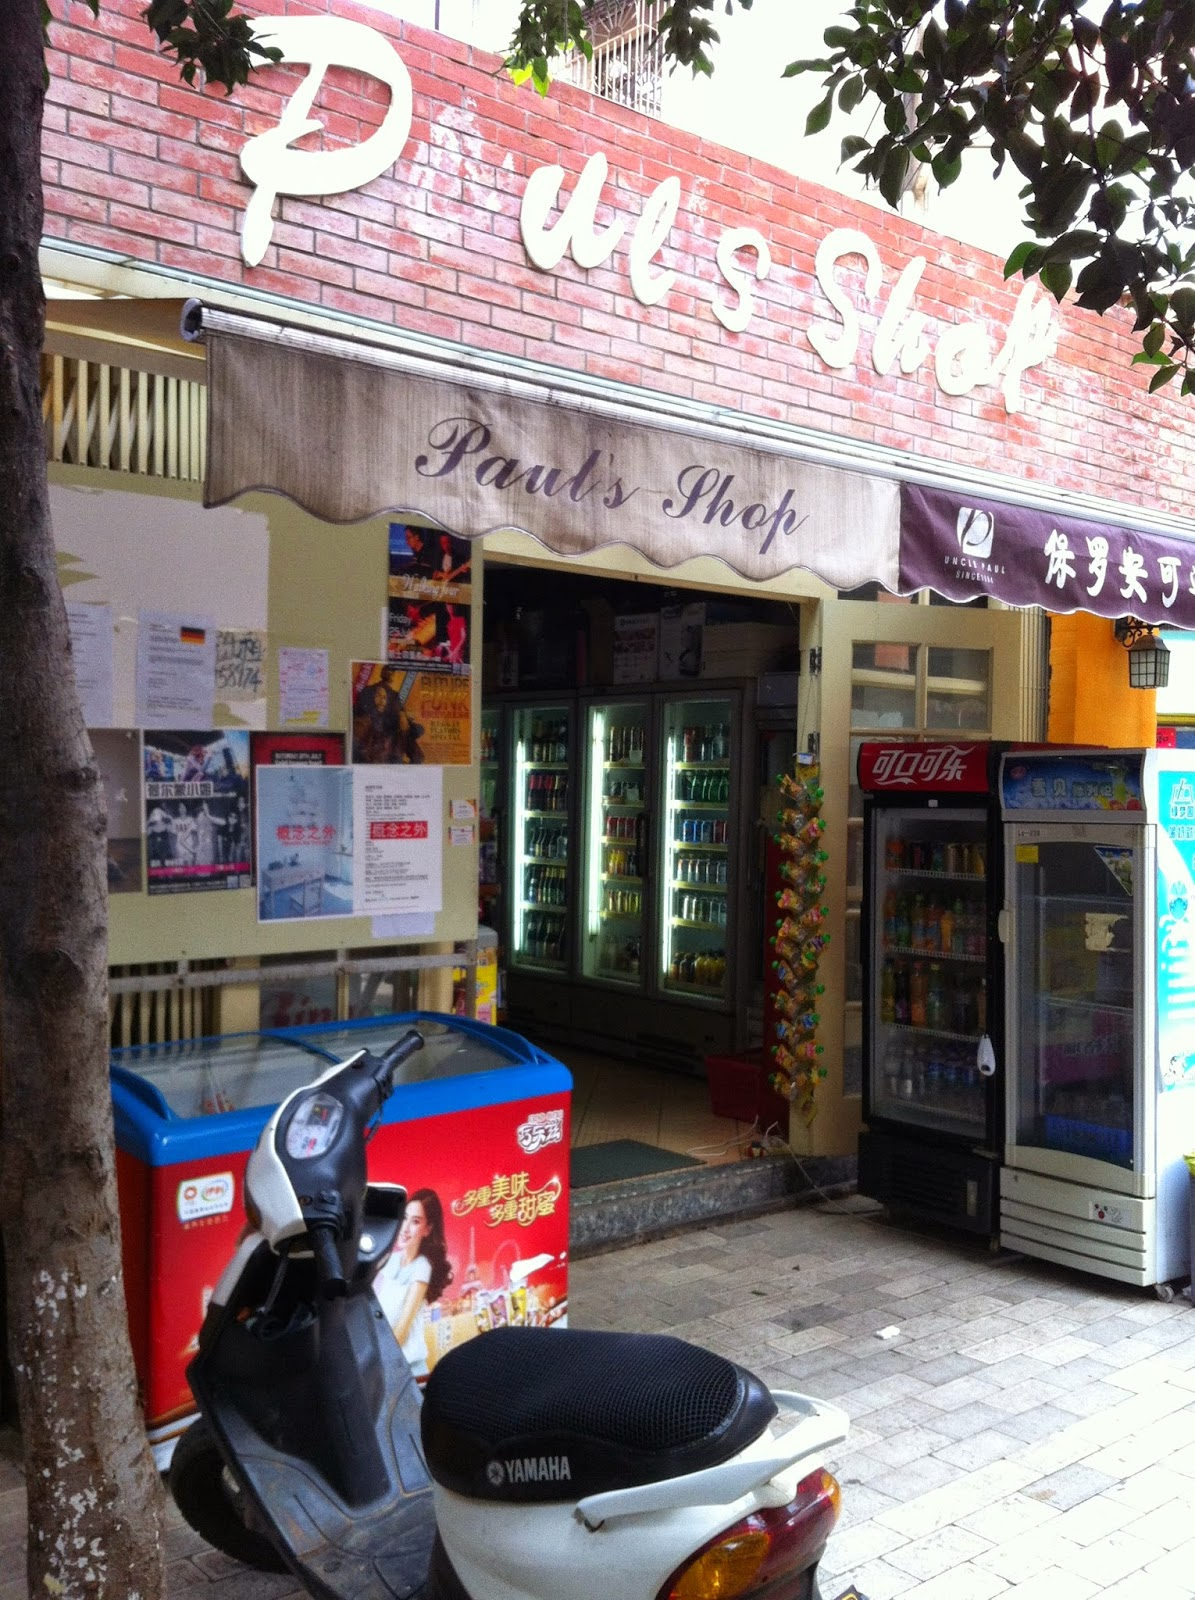 The outside of Paul's Shop in Kunming